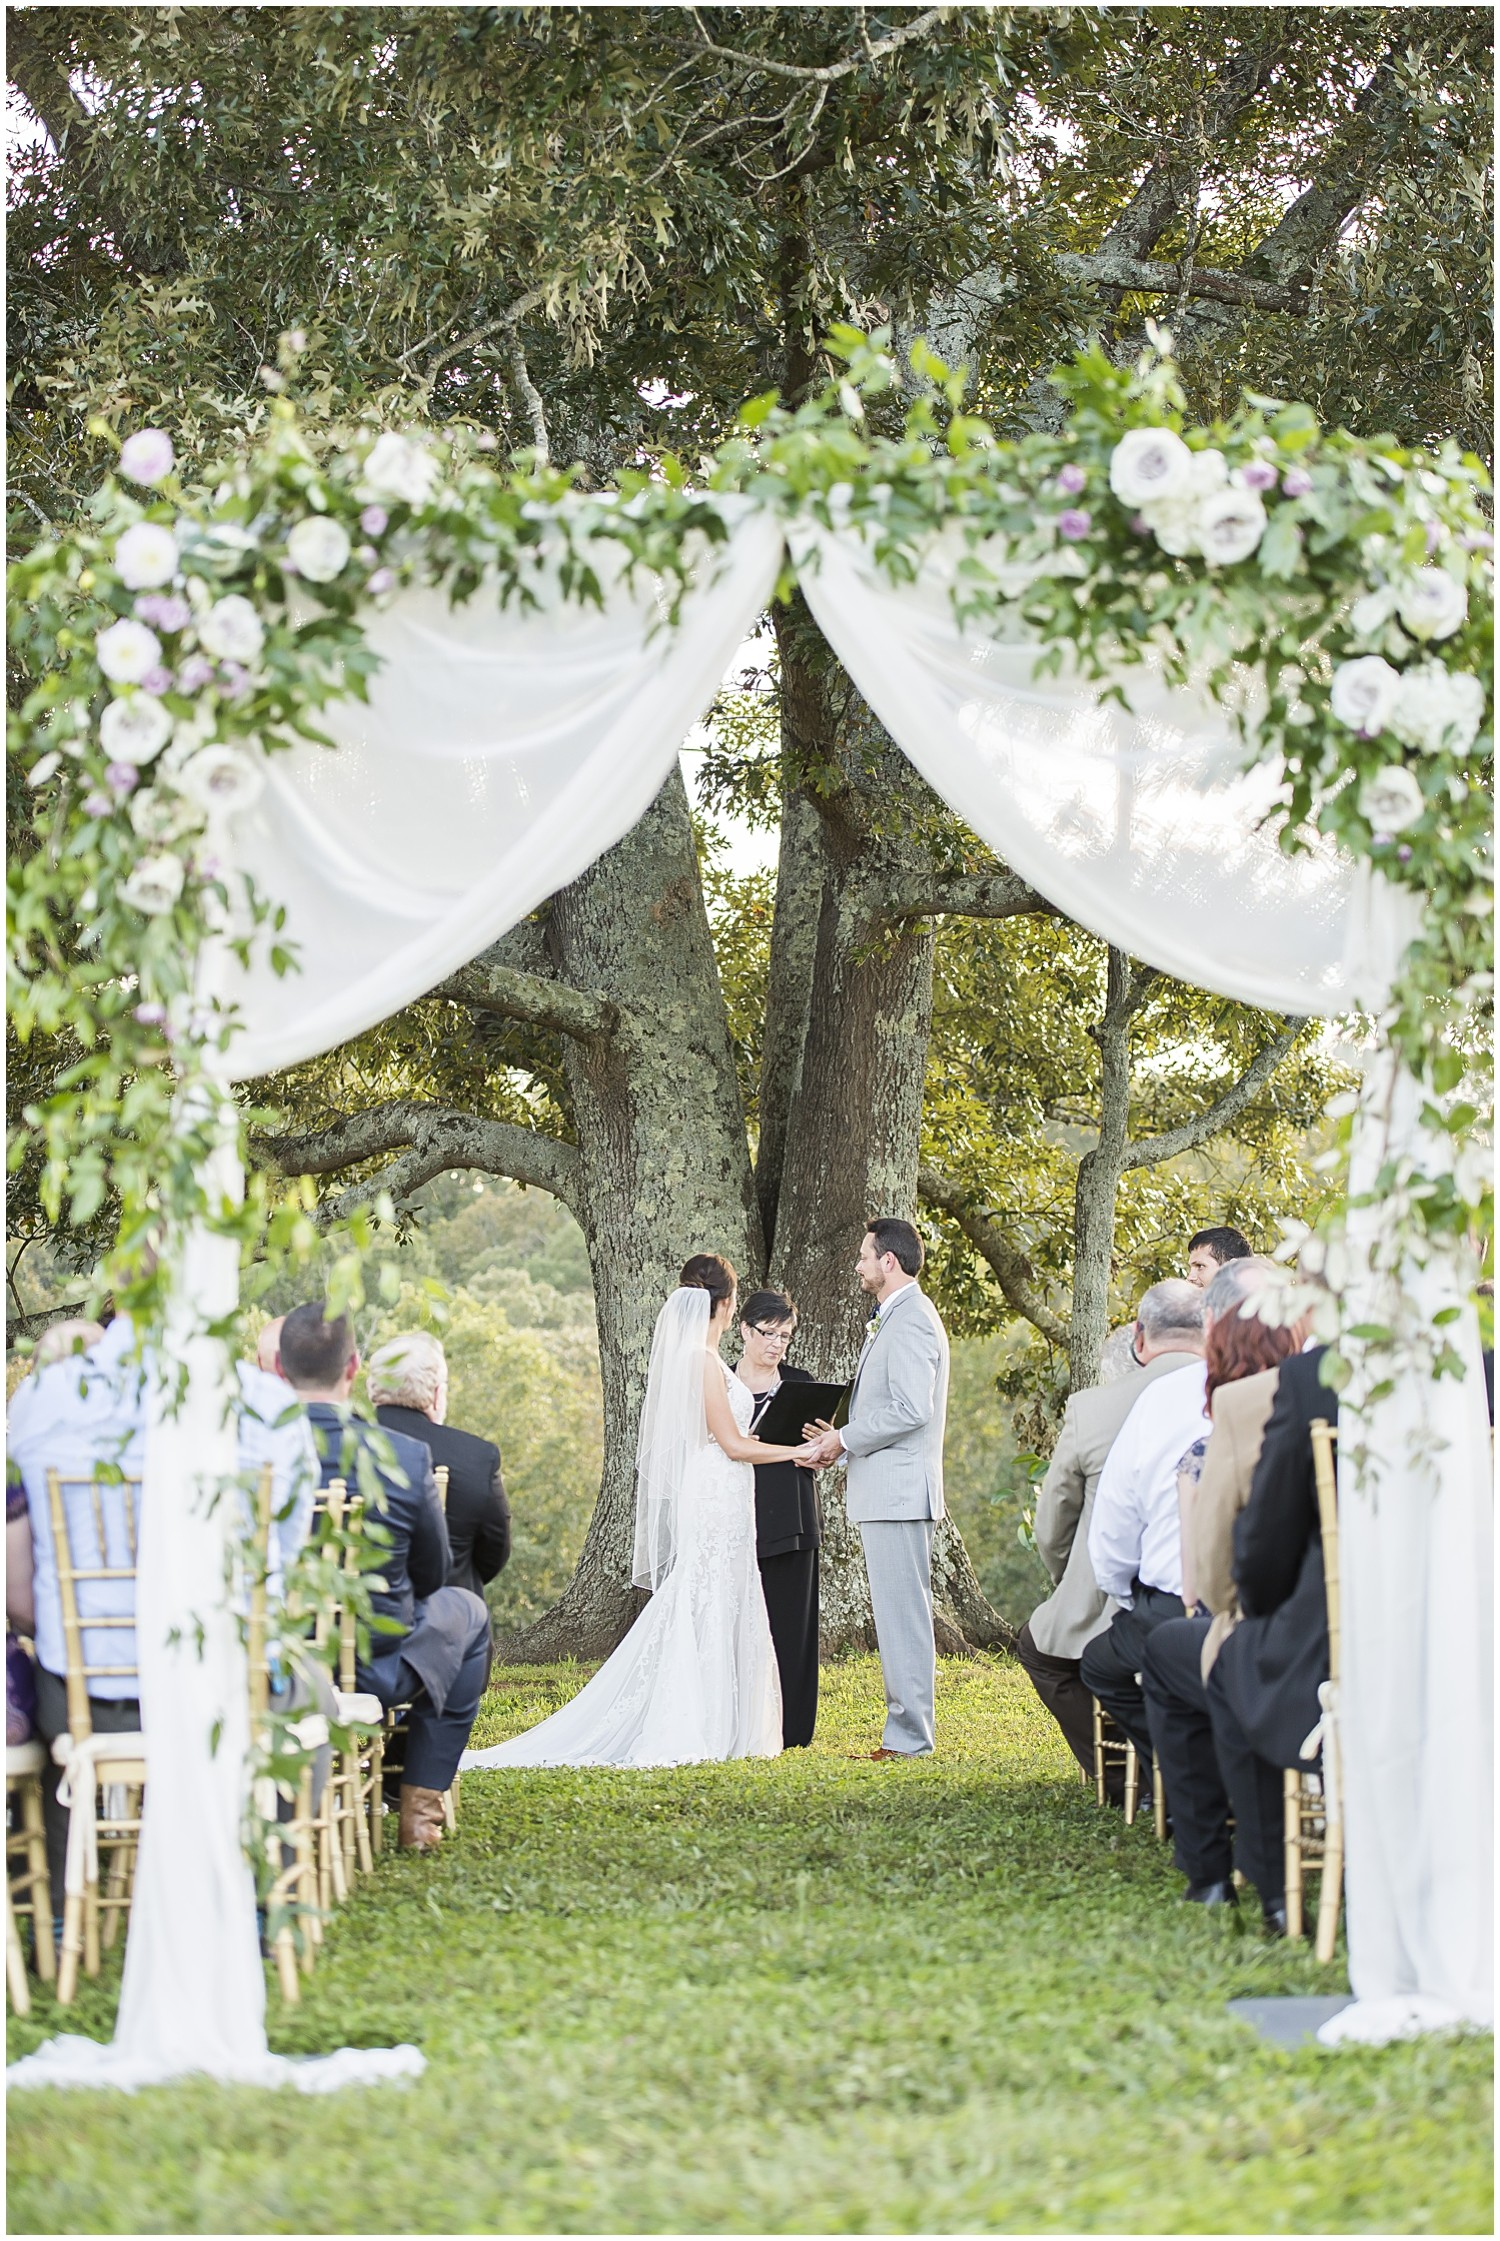 Greenbrier Farms -- Bustld -- Planning Your Wedding Just Got